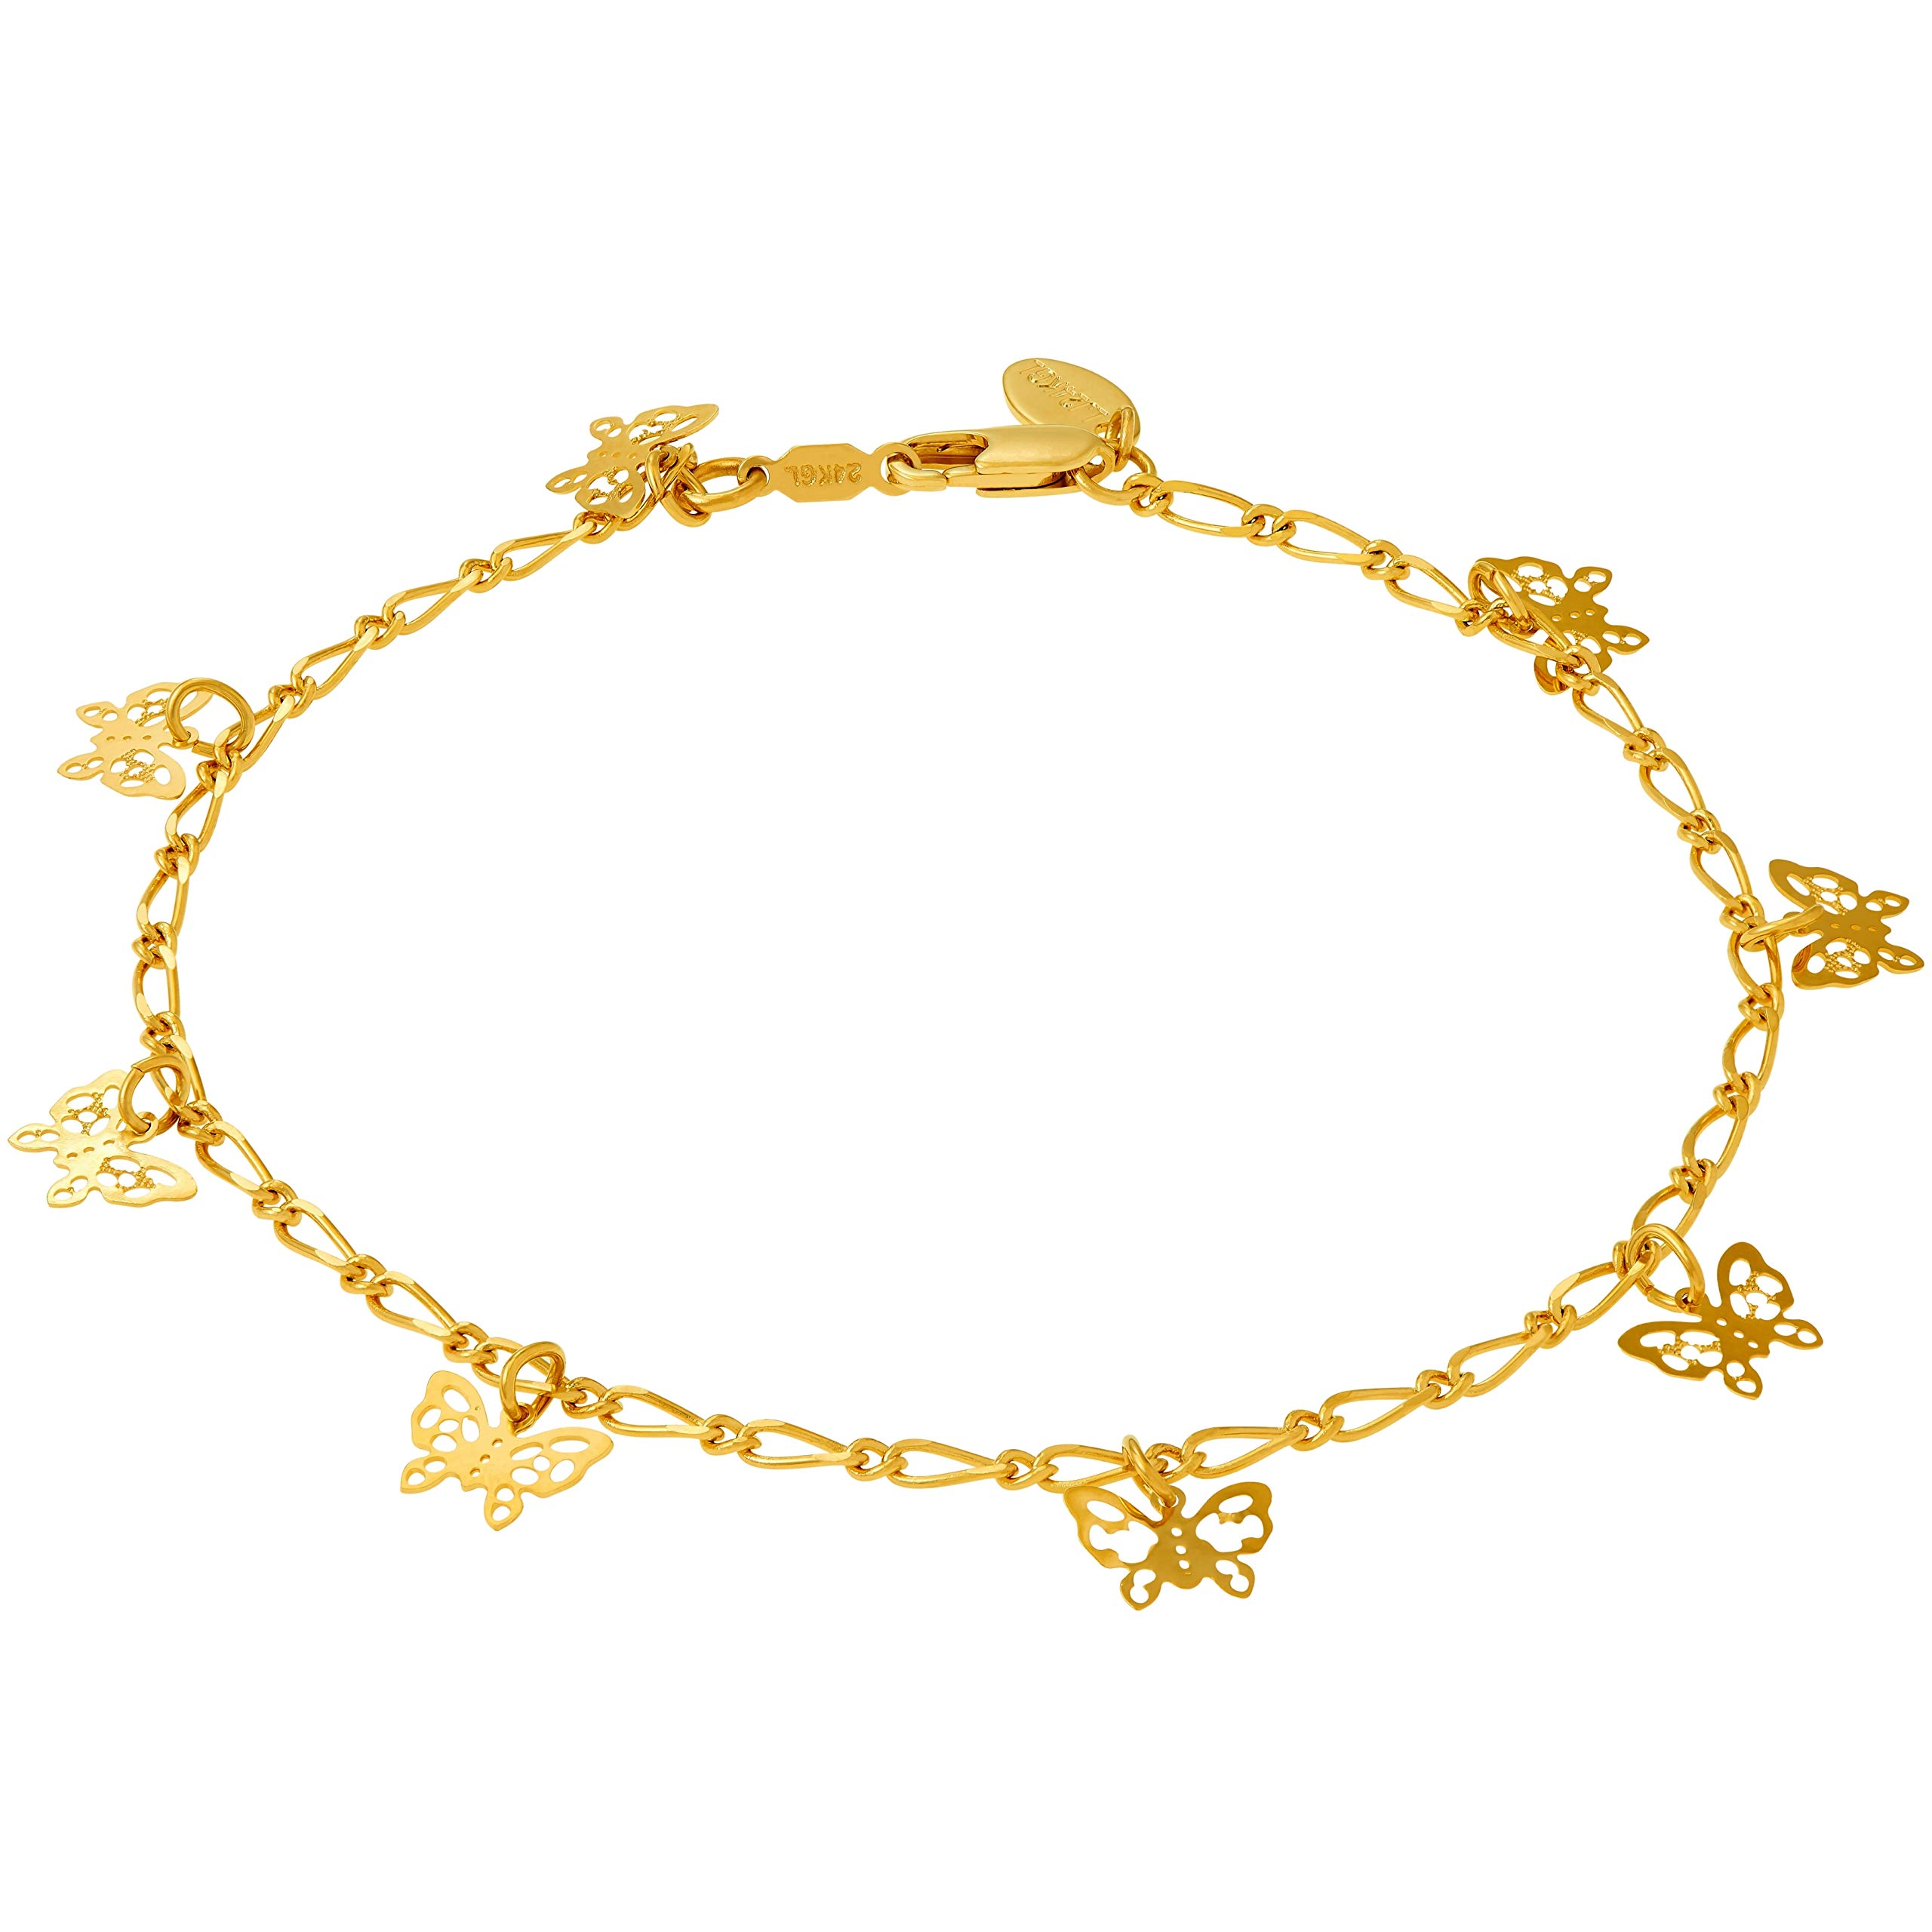 Lifetime Jewelry 24k Gold Plated Butterfly Ankle Bracelet to Wear at Party or Beach for Women and Teen Girls - Cute Durable Anklet - 9 10 and 11 inches - Made in USA (11.0)